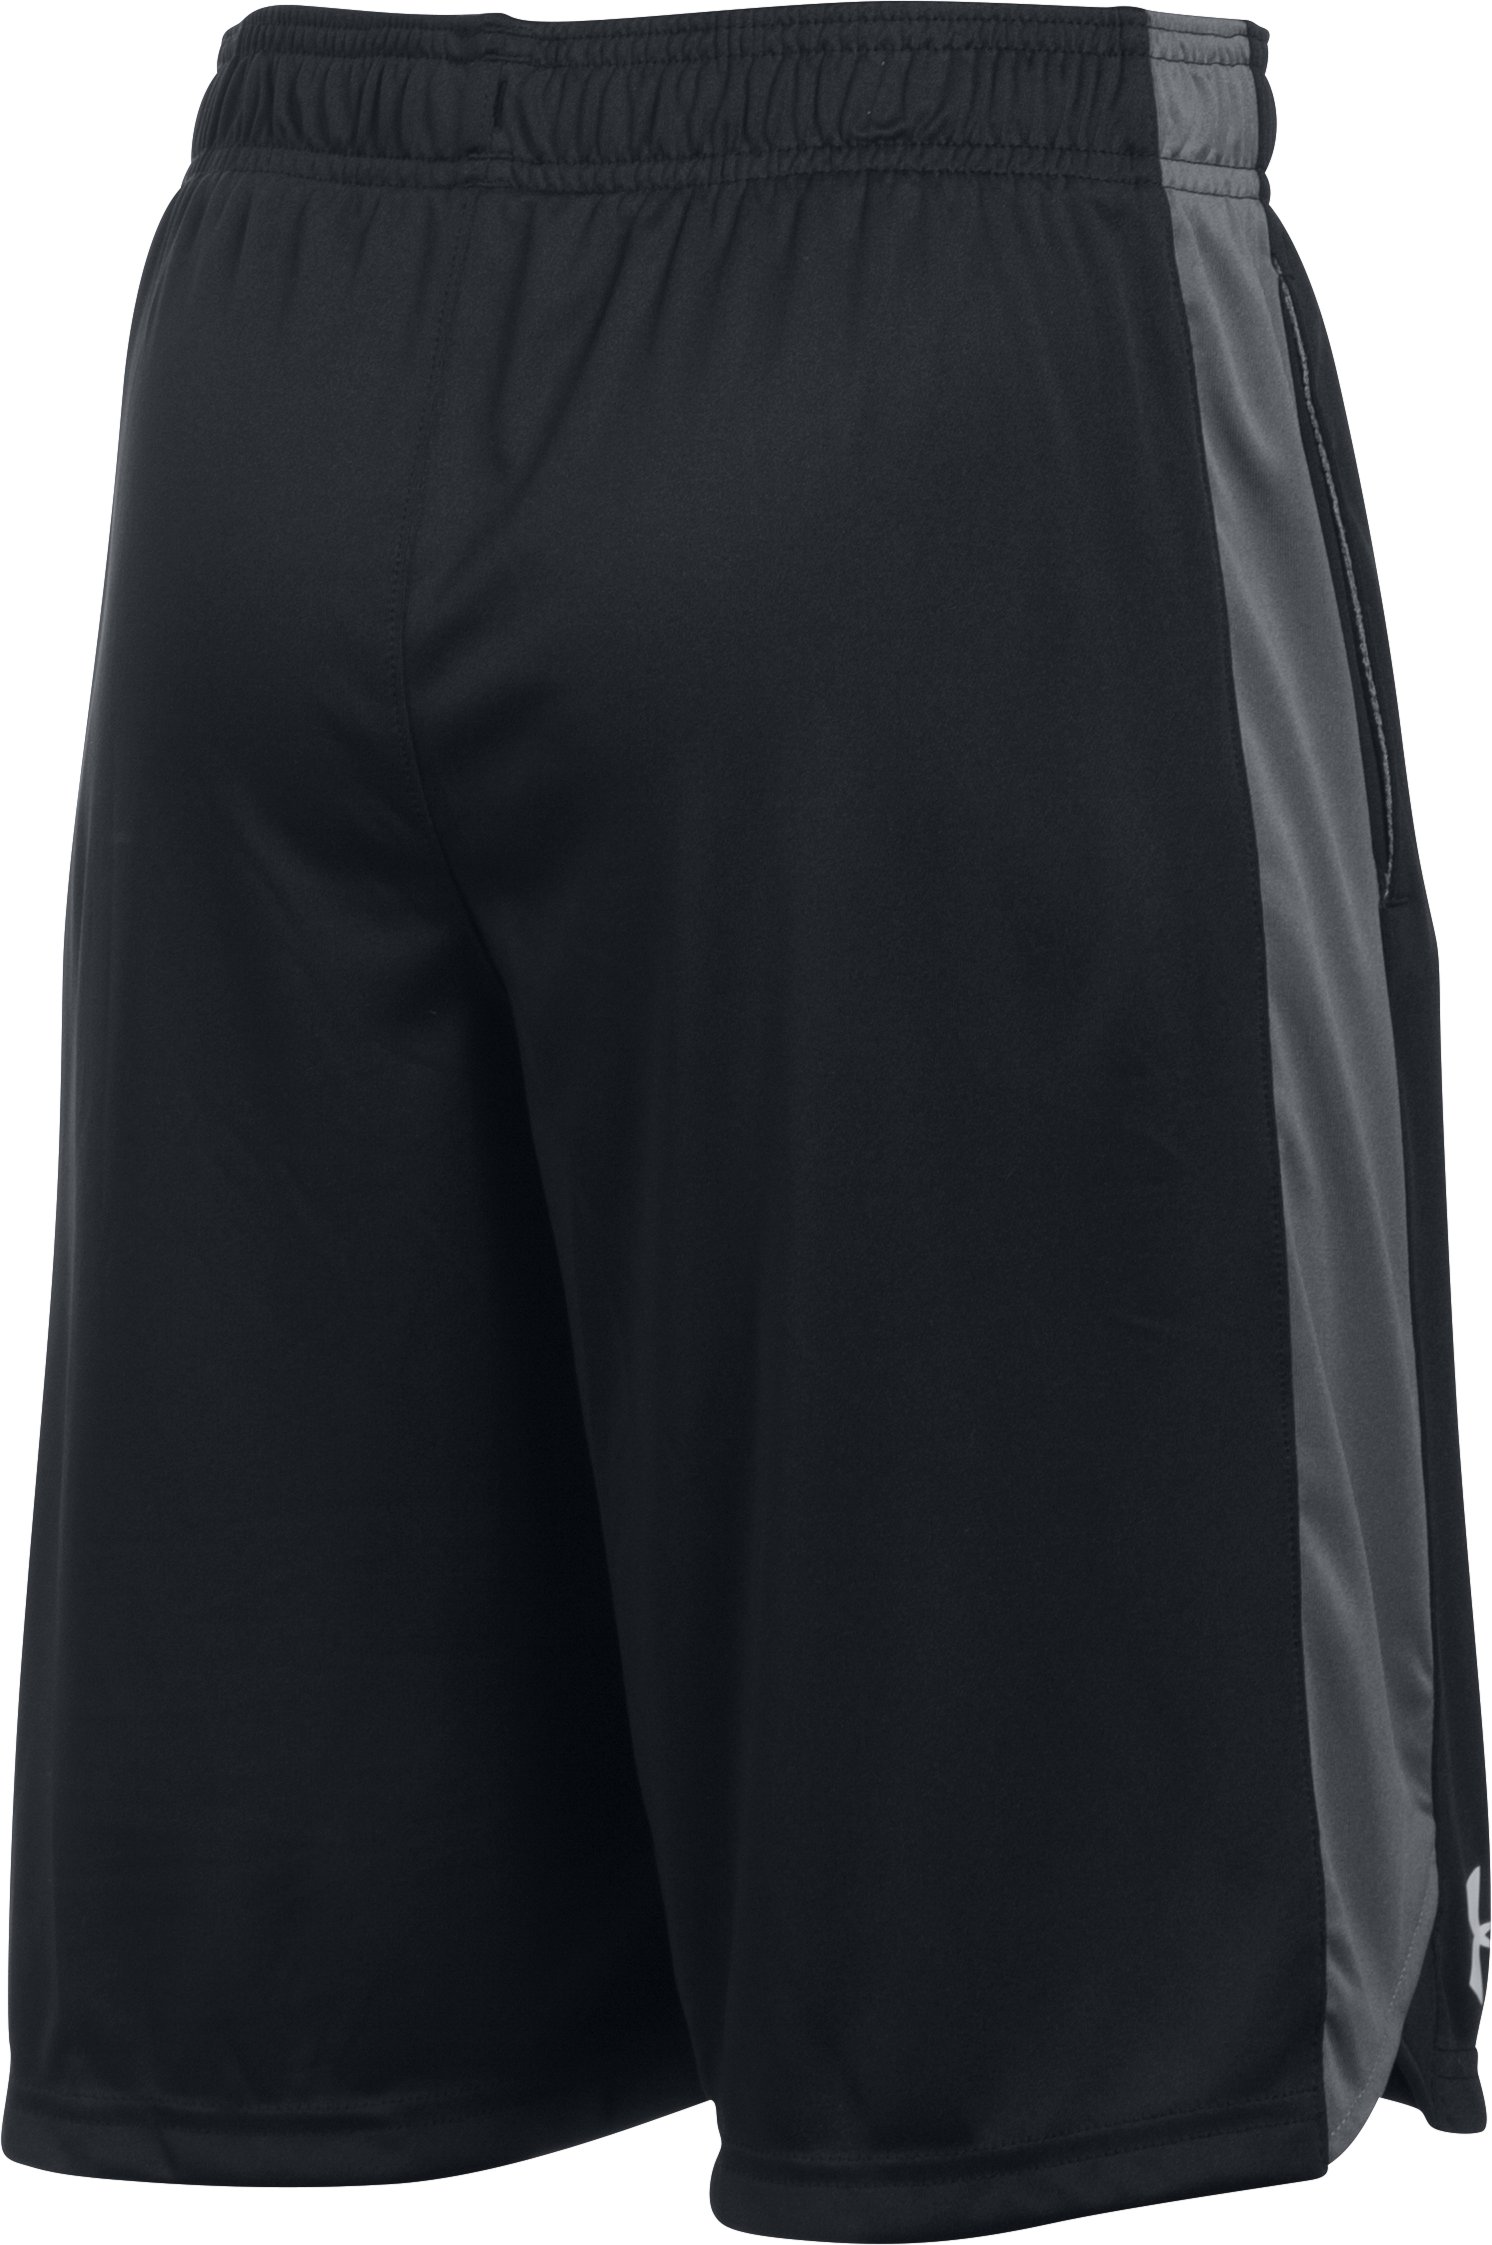 Boys' UA Eliminator Shorts, Black , undefined